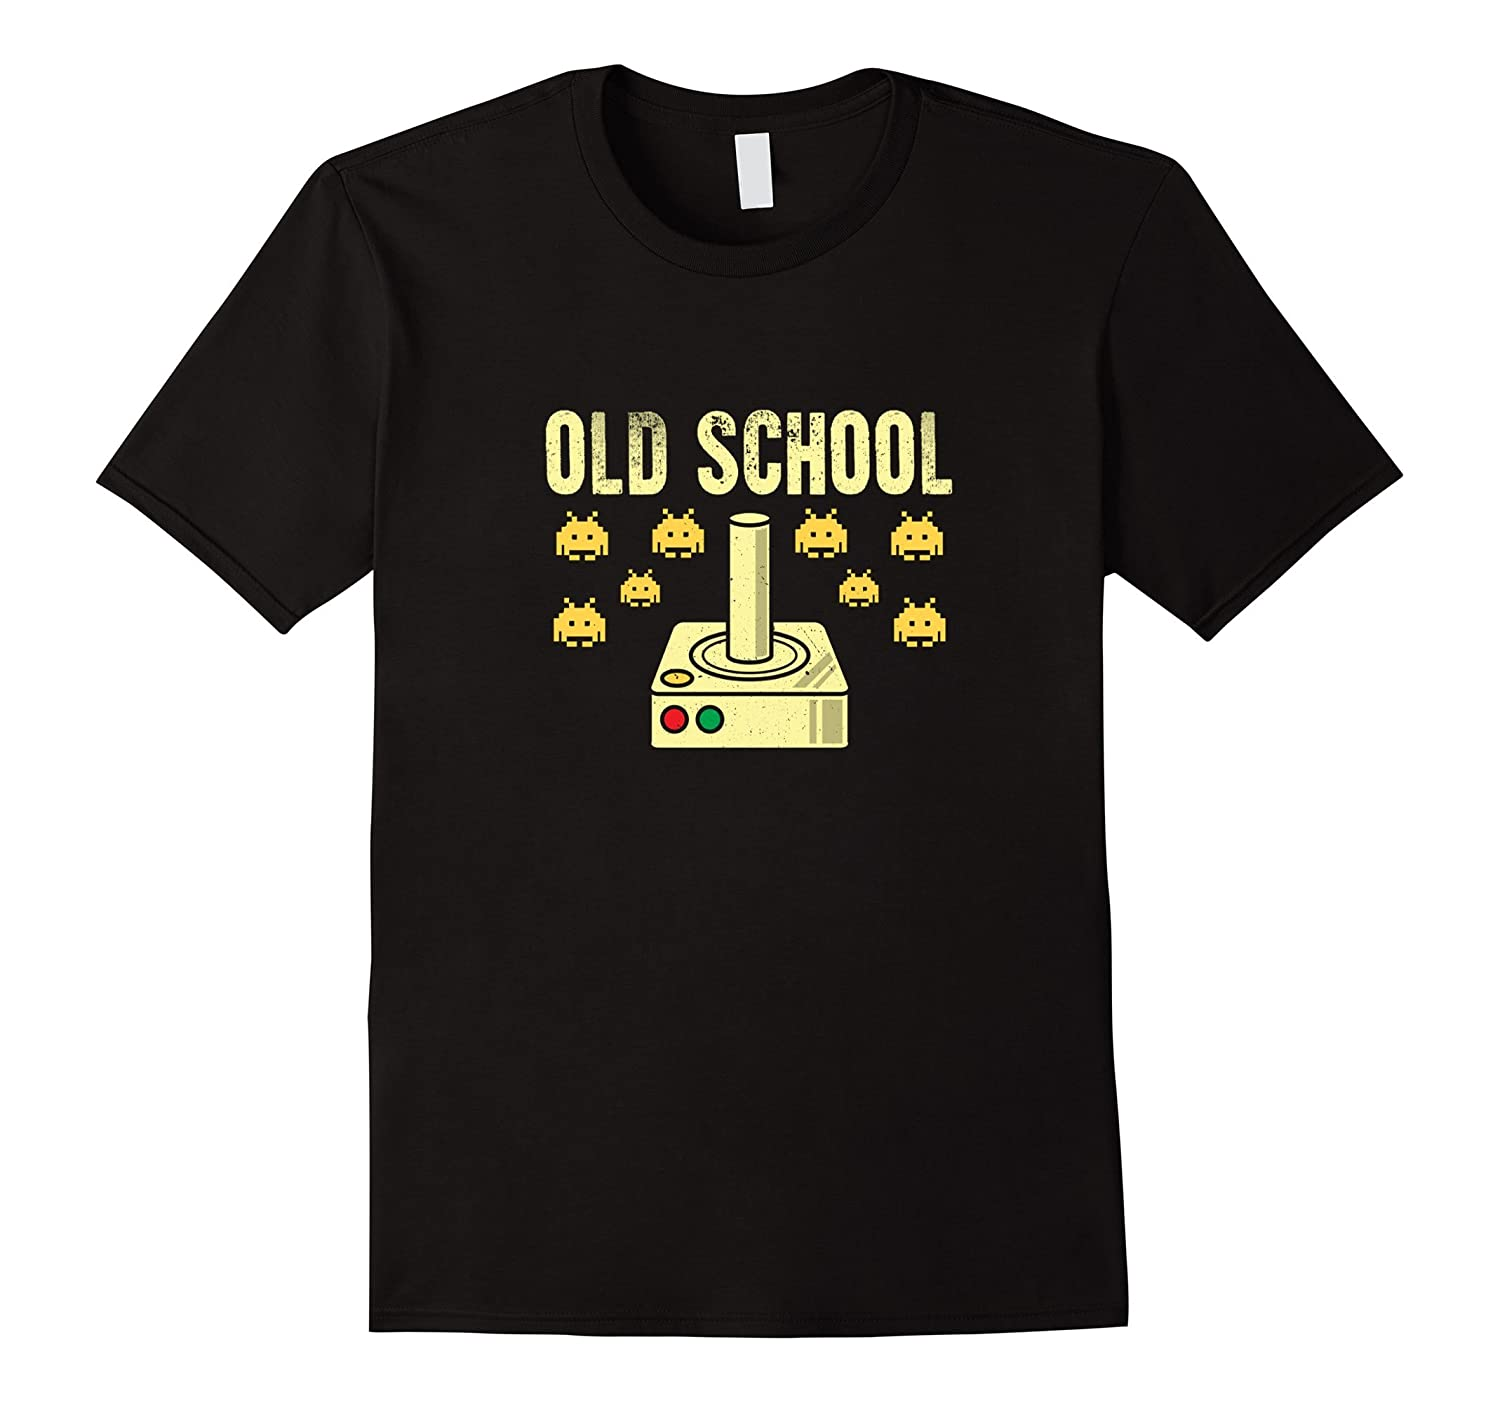 Old School Controller 80s Neon T-Shirt 80s Clothes Women Men-ANZ